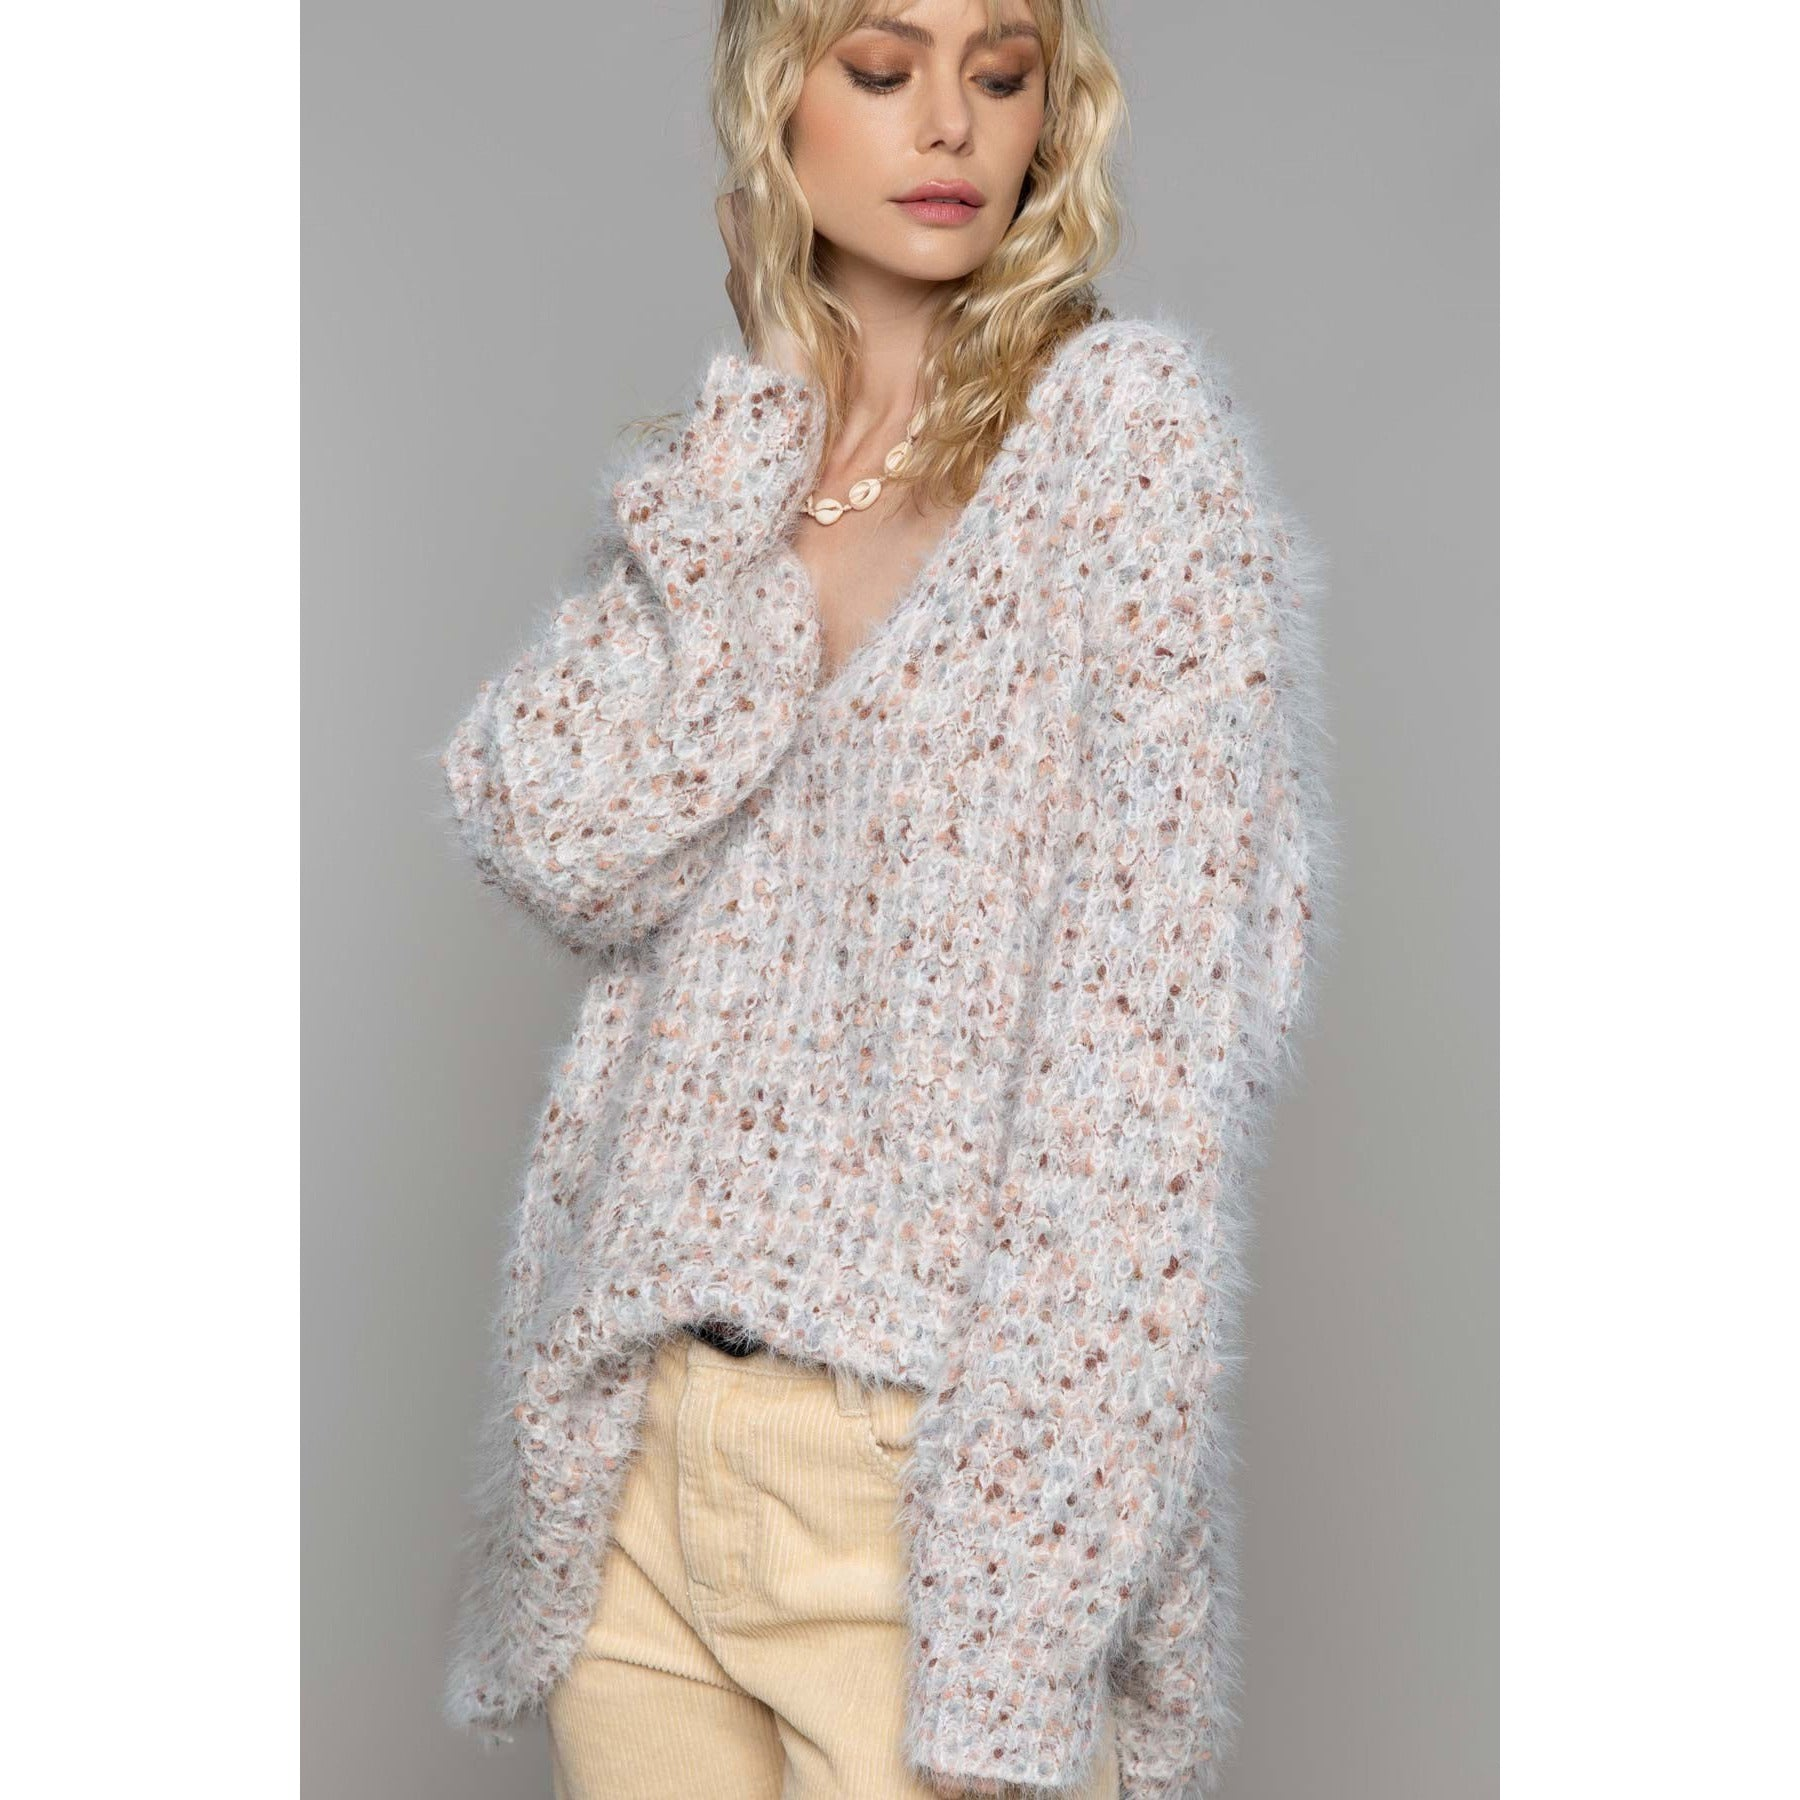 White Mohair Sweater with Multi color Confetti Dots in Hues of Rose and Grey